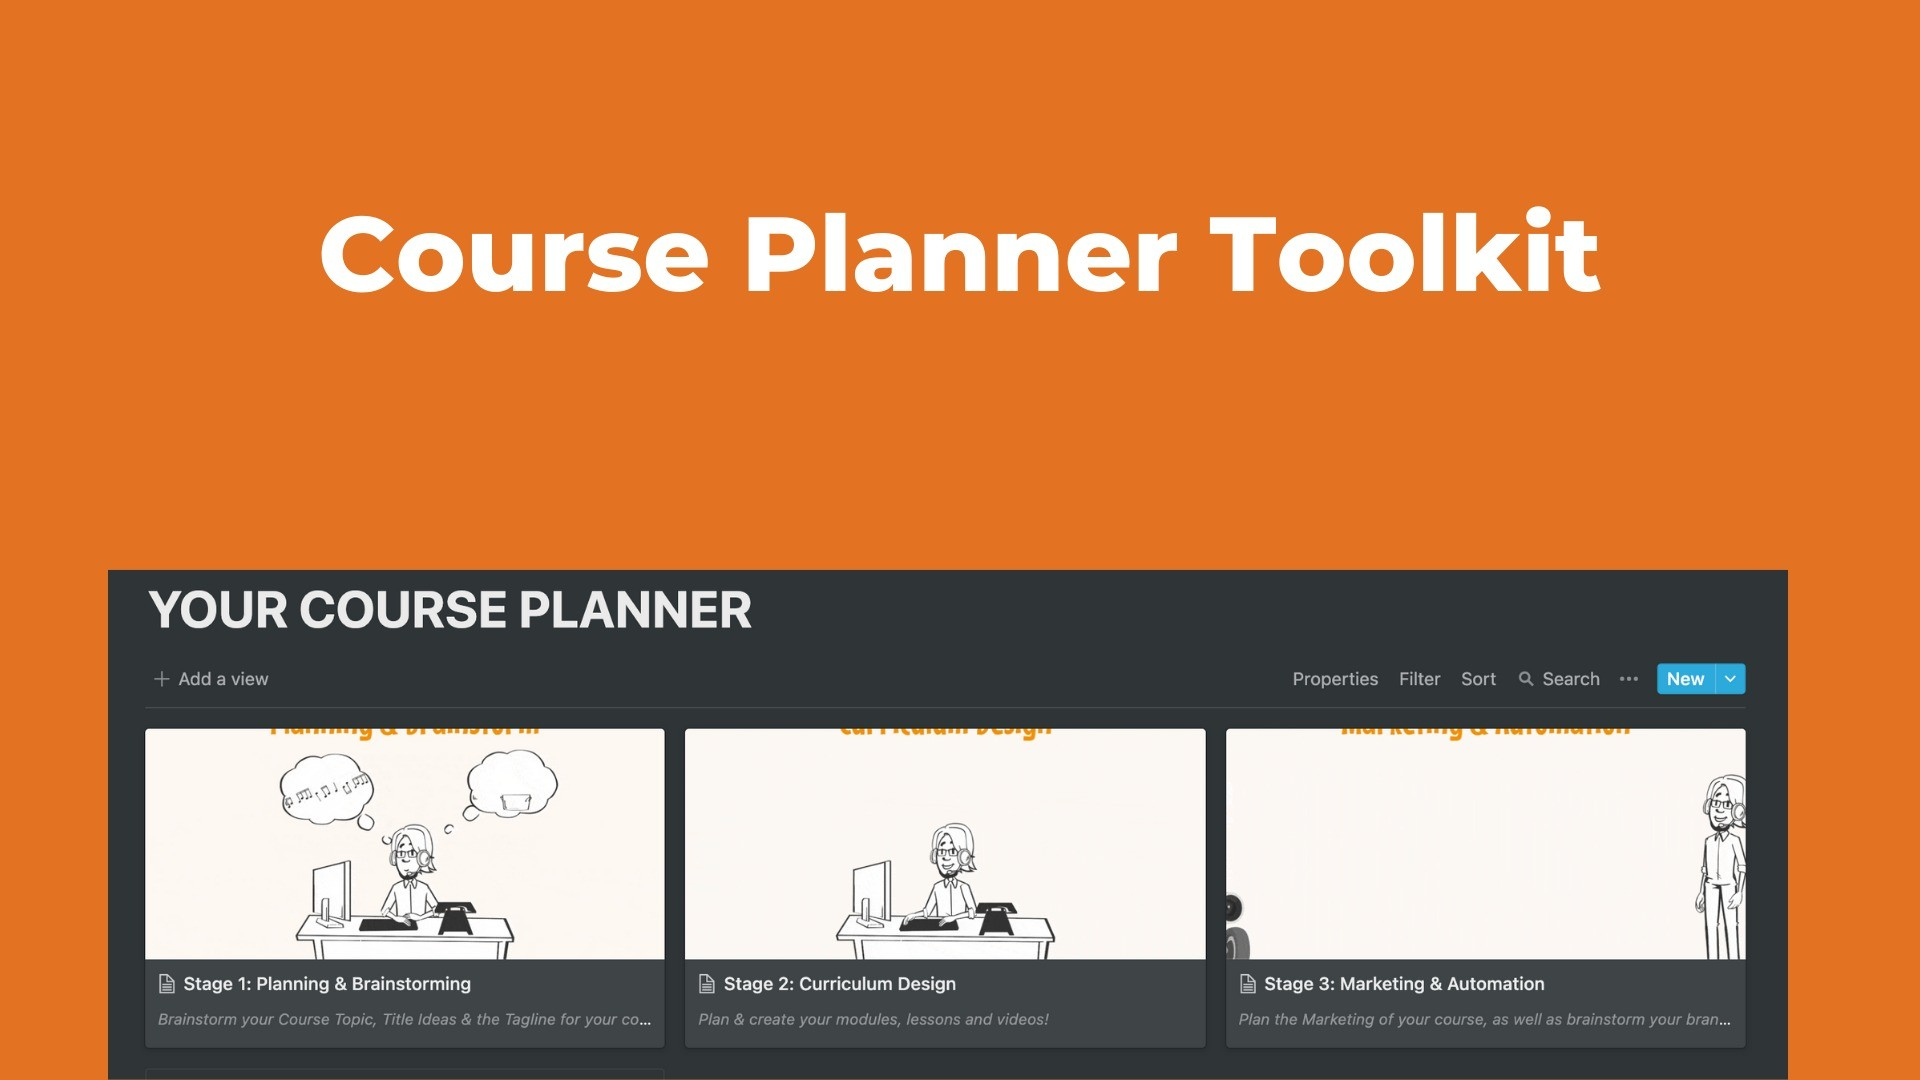 AppSumo Deal for Course Planner Toolkit